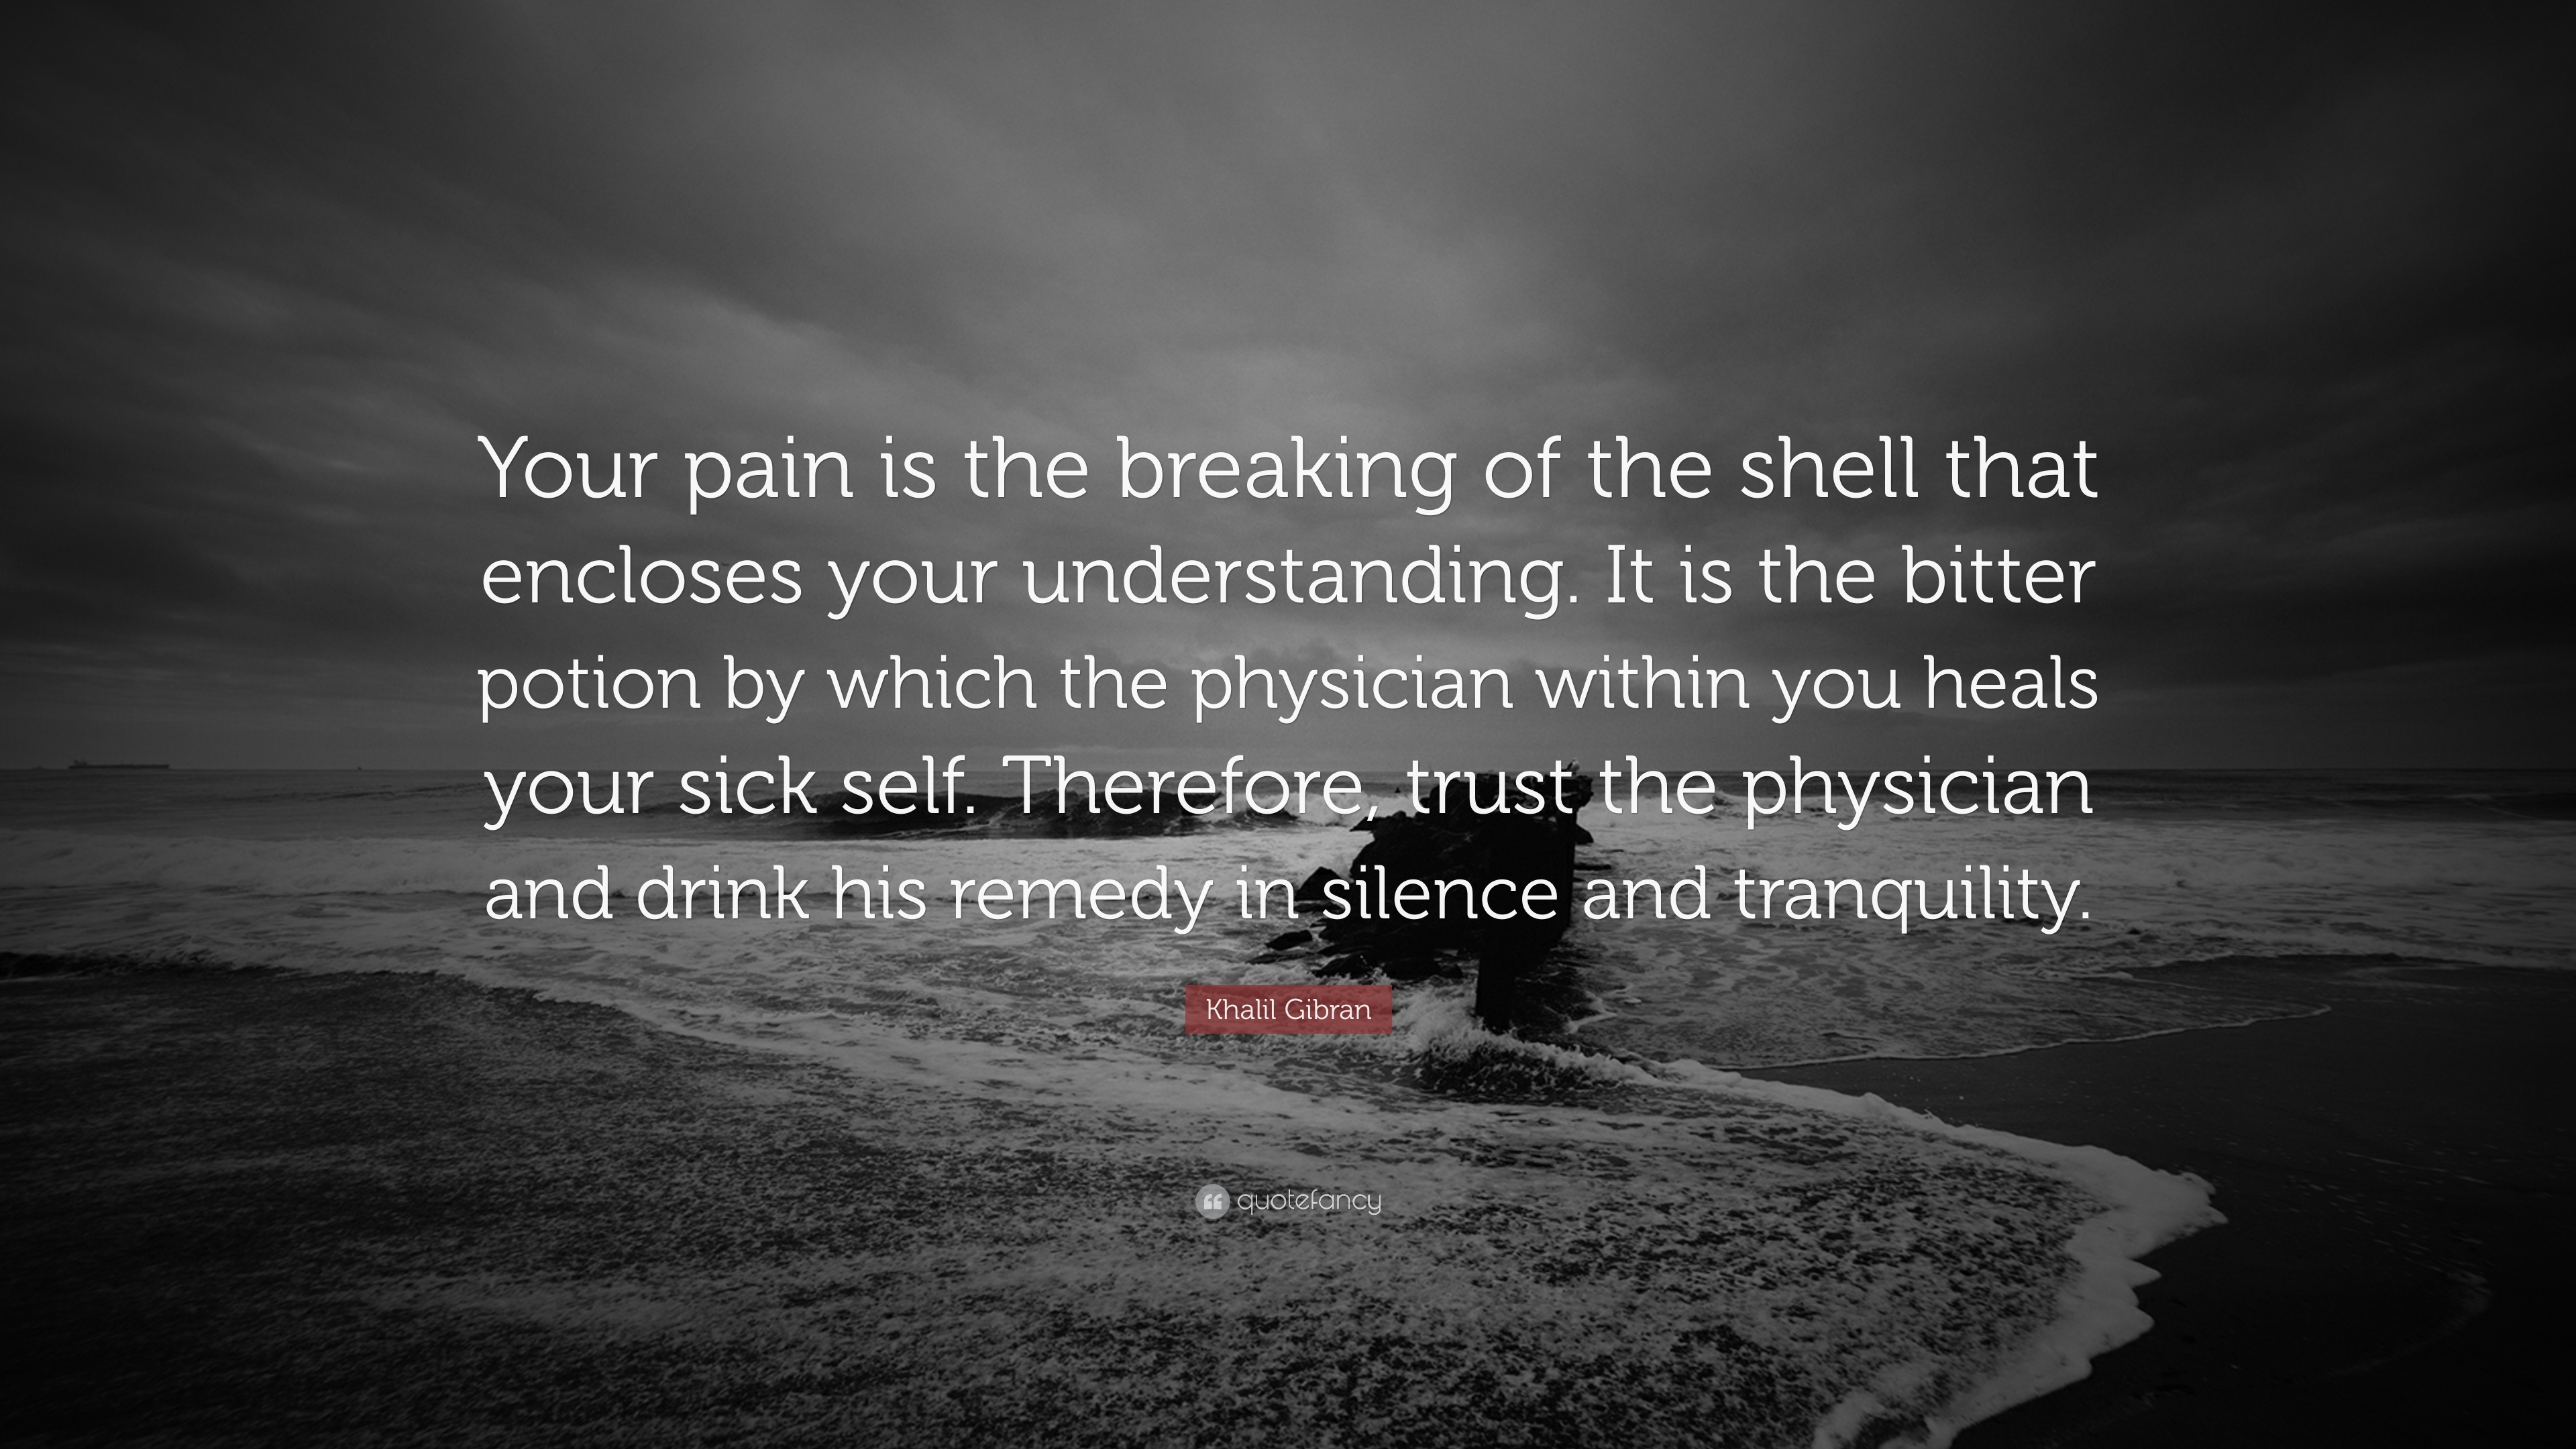 """Your pain is the breaking of the shell that encloses your understanding. It is the bitter potion by which the physician within you heals your sick self. Therefore, trust the physician and drink his remedy in silence and tranquility."" – Khalil Gibran [3840×2160]"